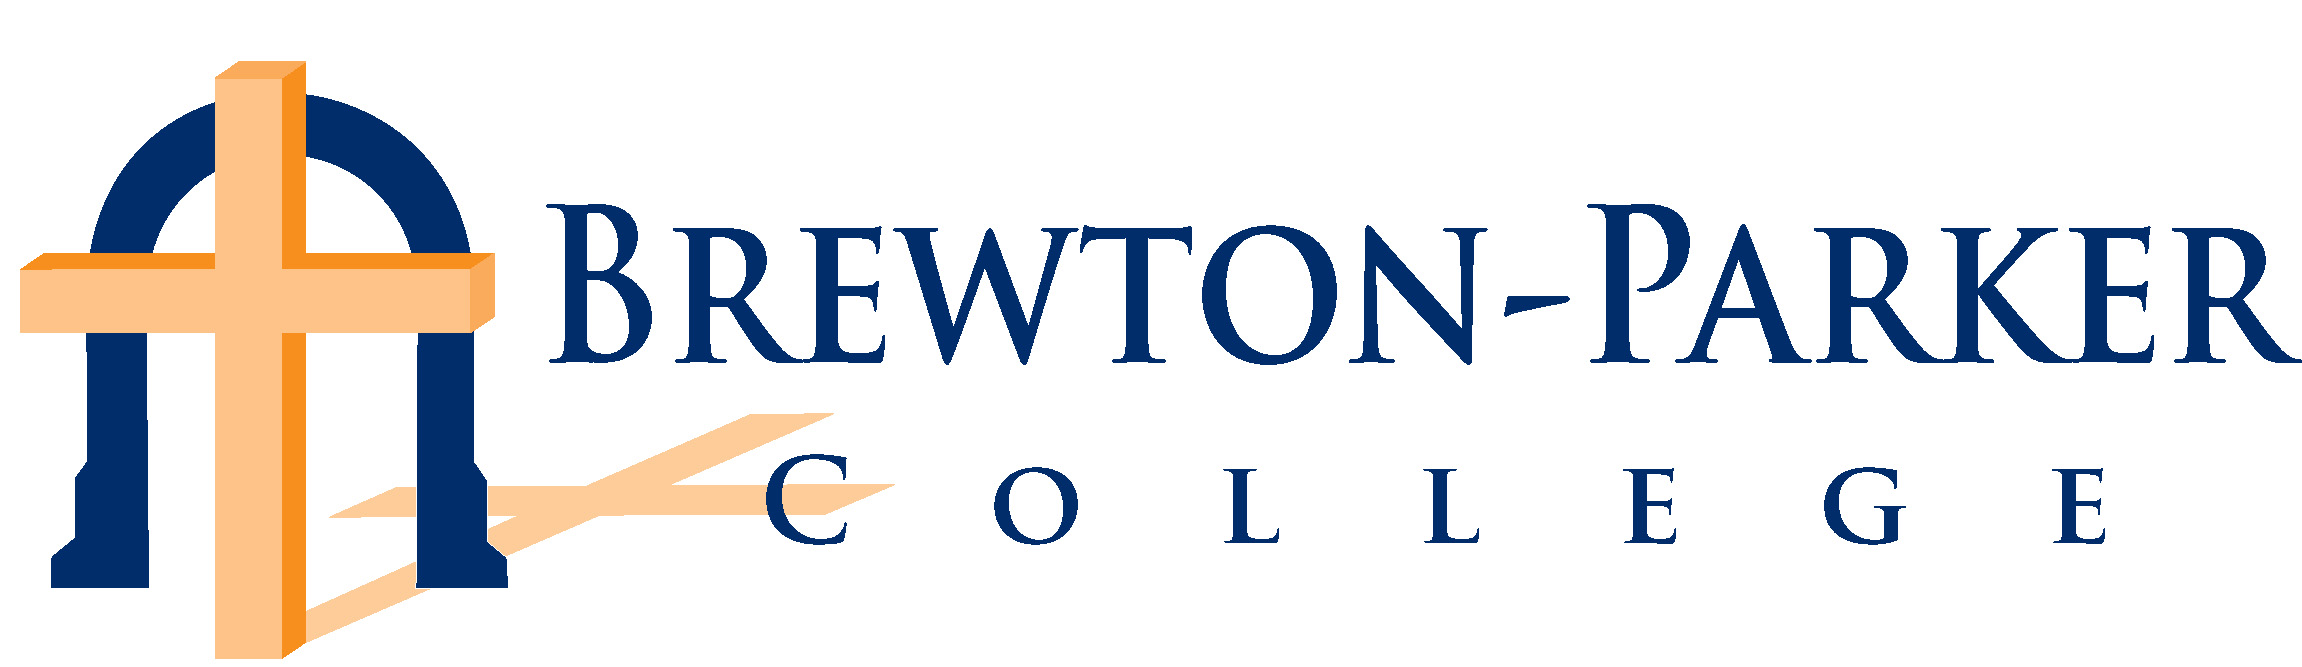 Brewton Parker College